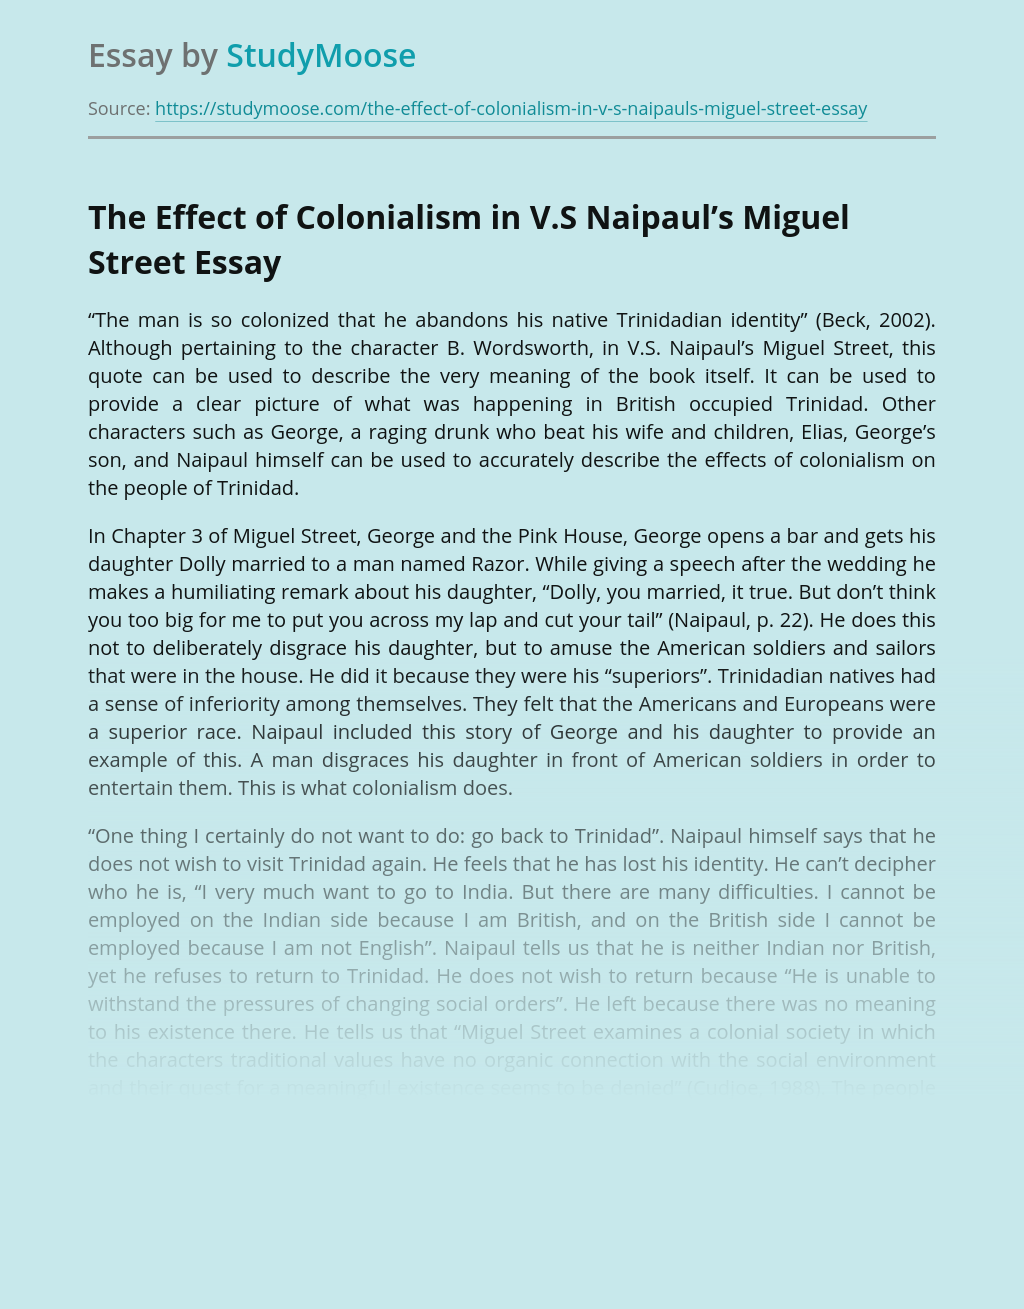 The Effect of Colonialism in V.S Naipaul's Miguel Street